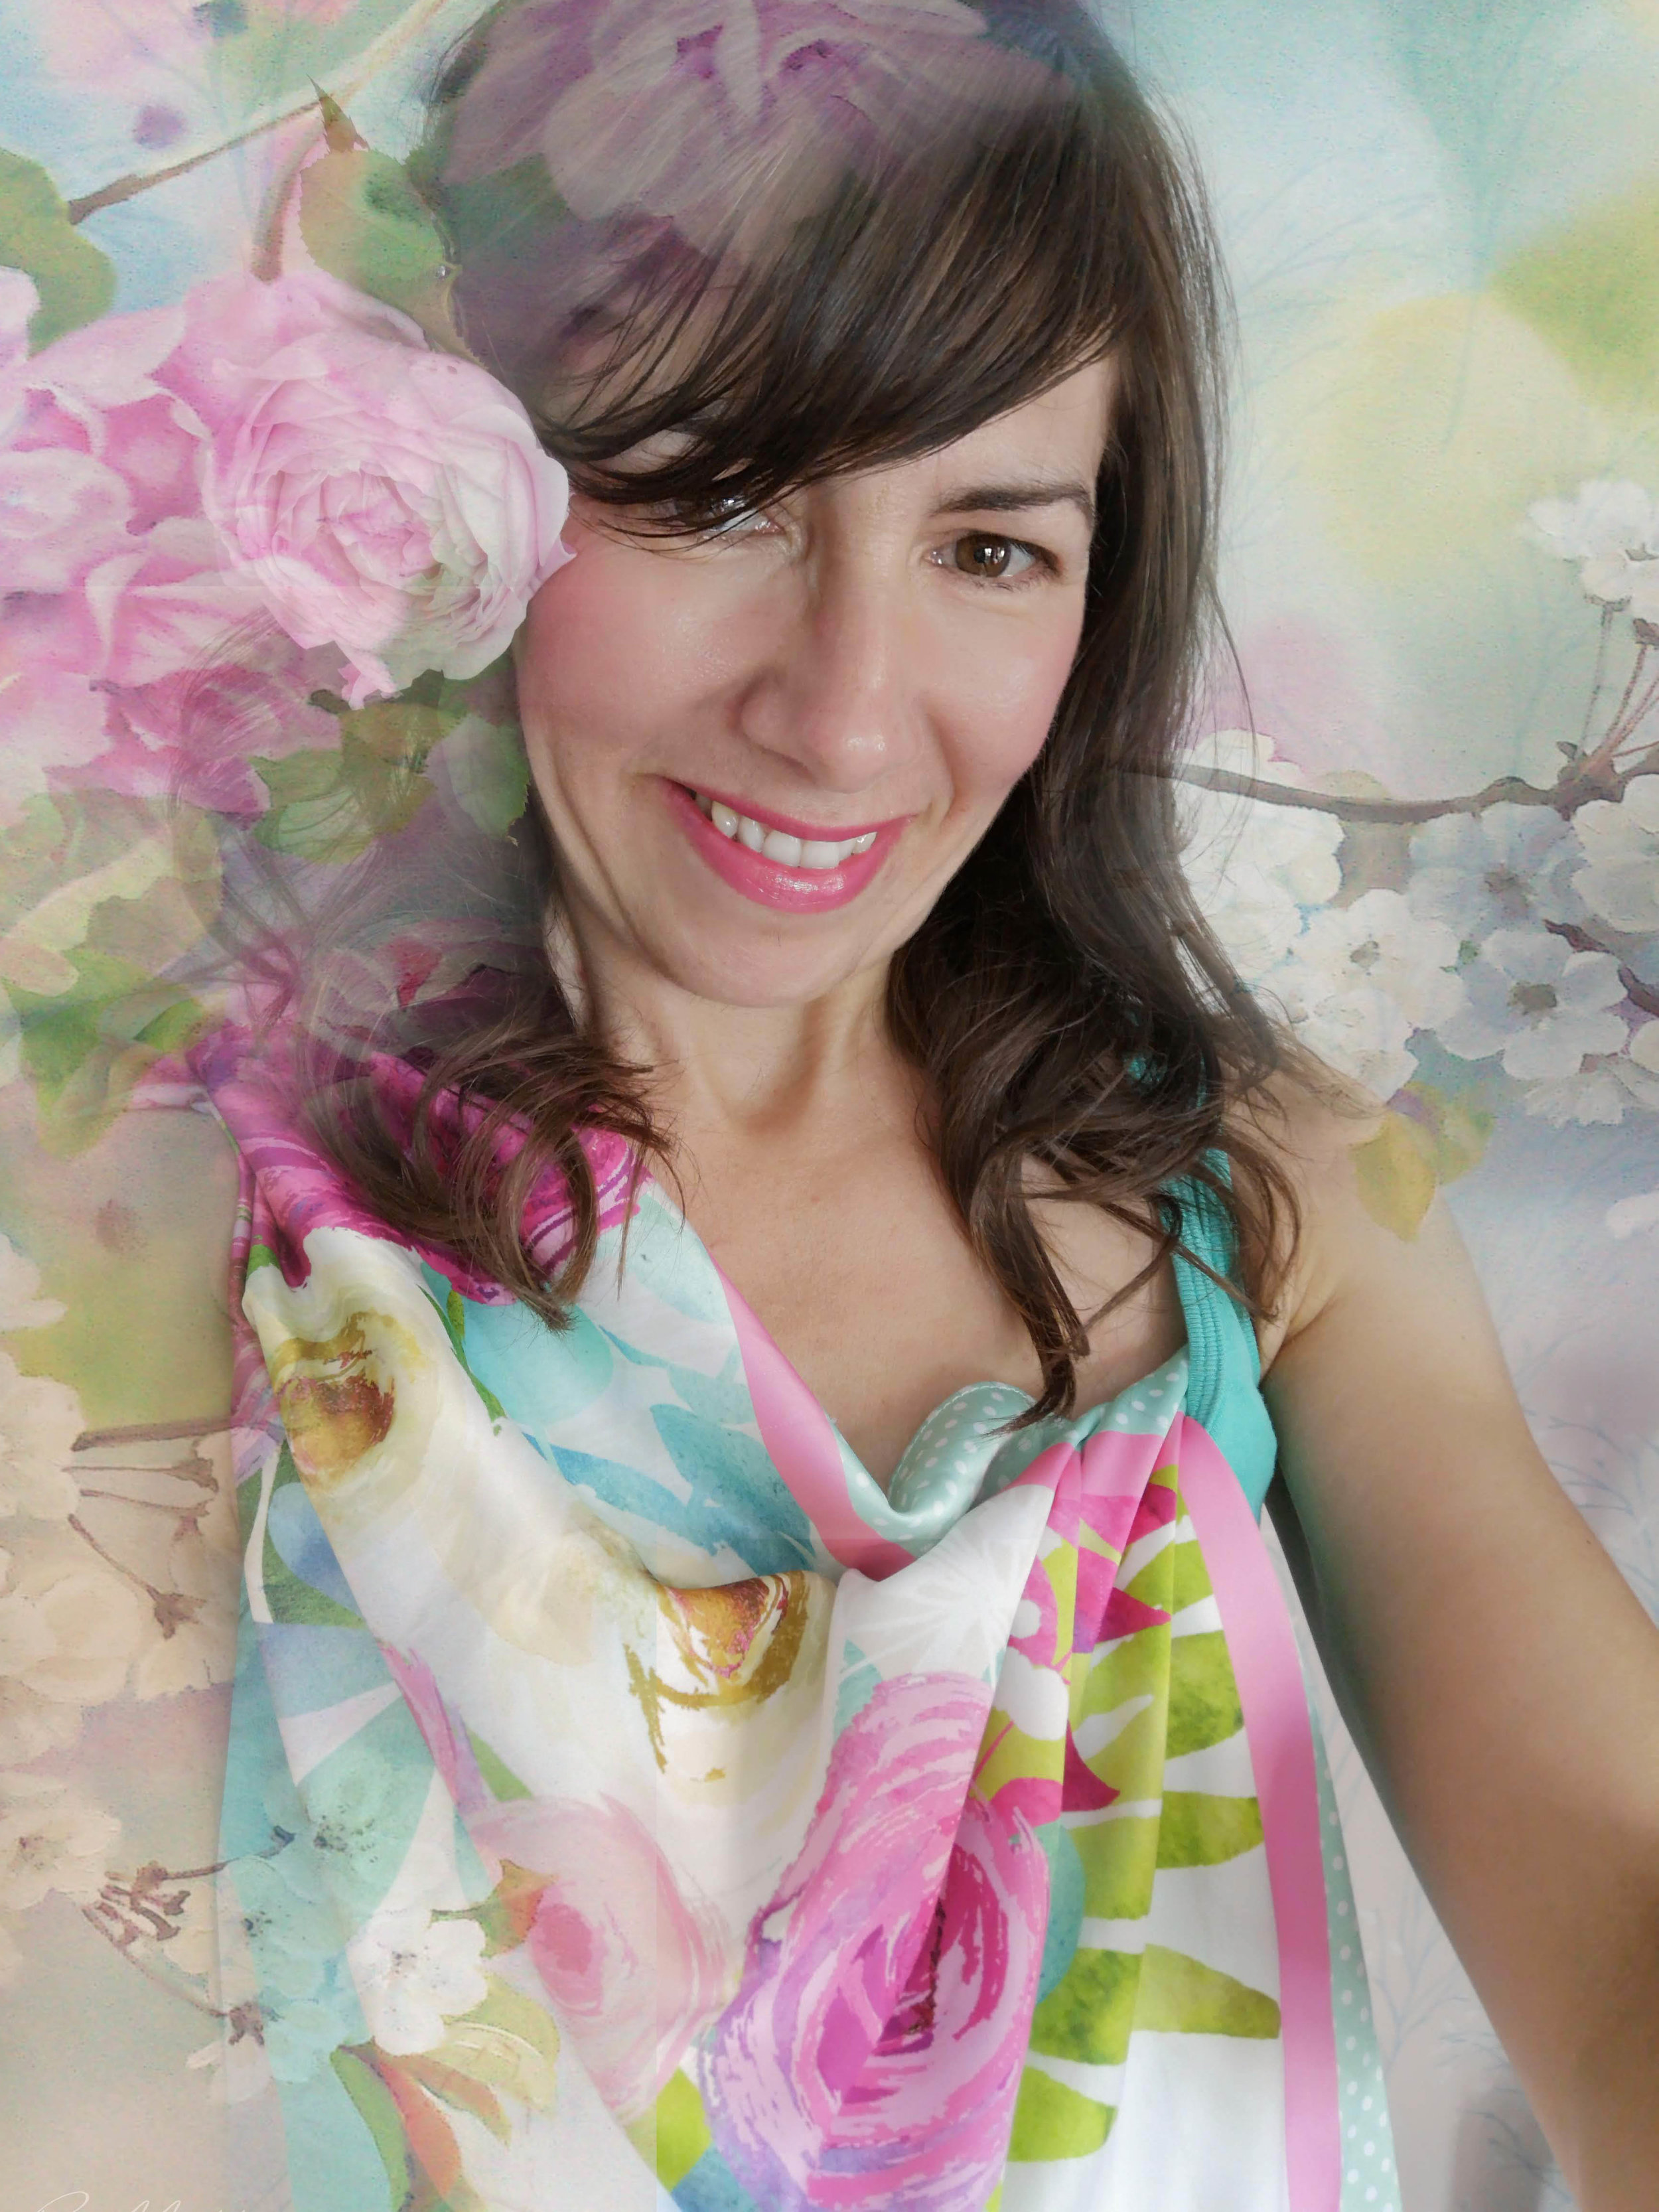 Satin Scarf Collection - Cool, light and perfect for that summer getaway. Accessorise your summer wardrobe with one of Nicola's beautiful satin scarfs. Available in the on-line store now. Click on the image to see the full collection.